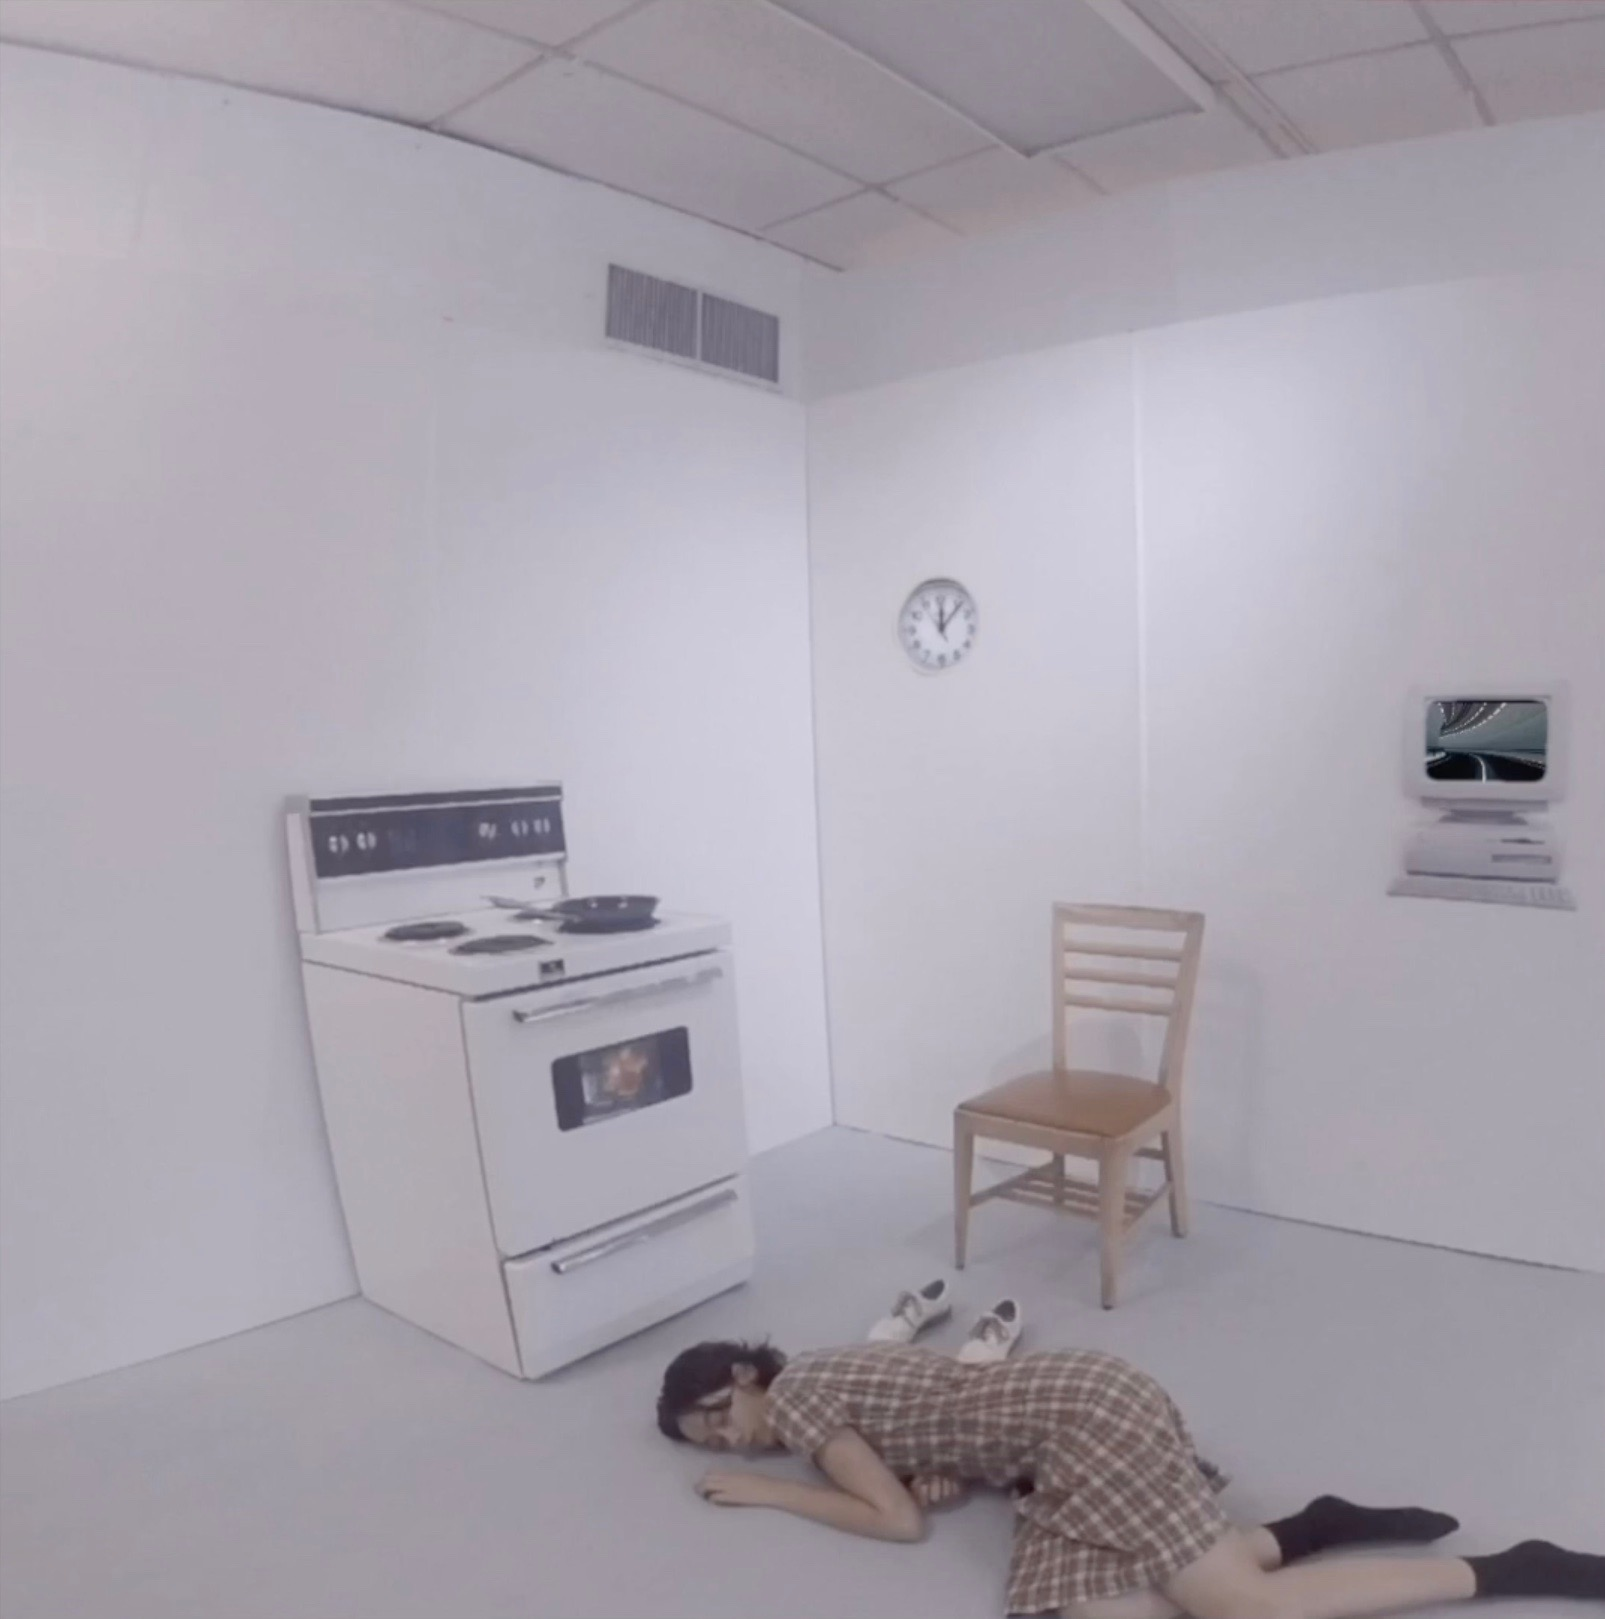 a woman lays on the floor, in an inclosed sterile environment, wearing a plaid dress and black socks, next to her lays a pair of white shoes, a stove and a chair. On the wall hangs a clock and to the right a graphic of a computer.